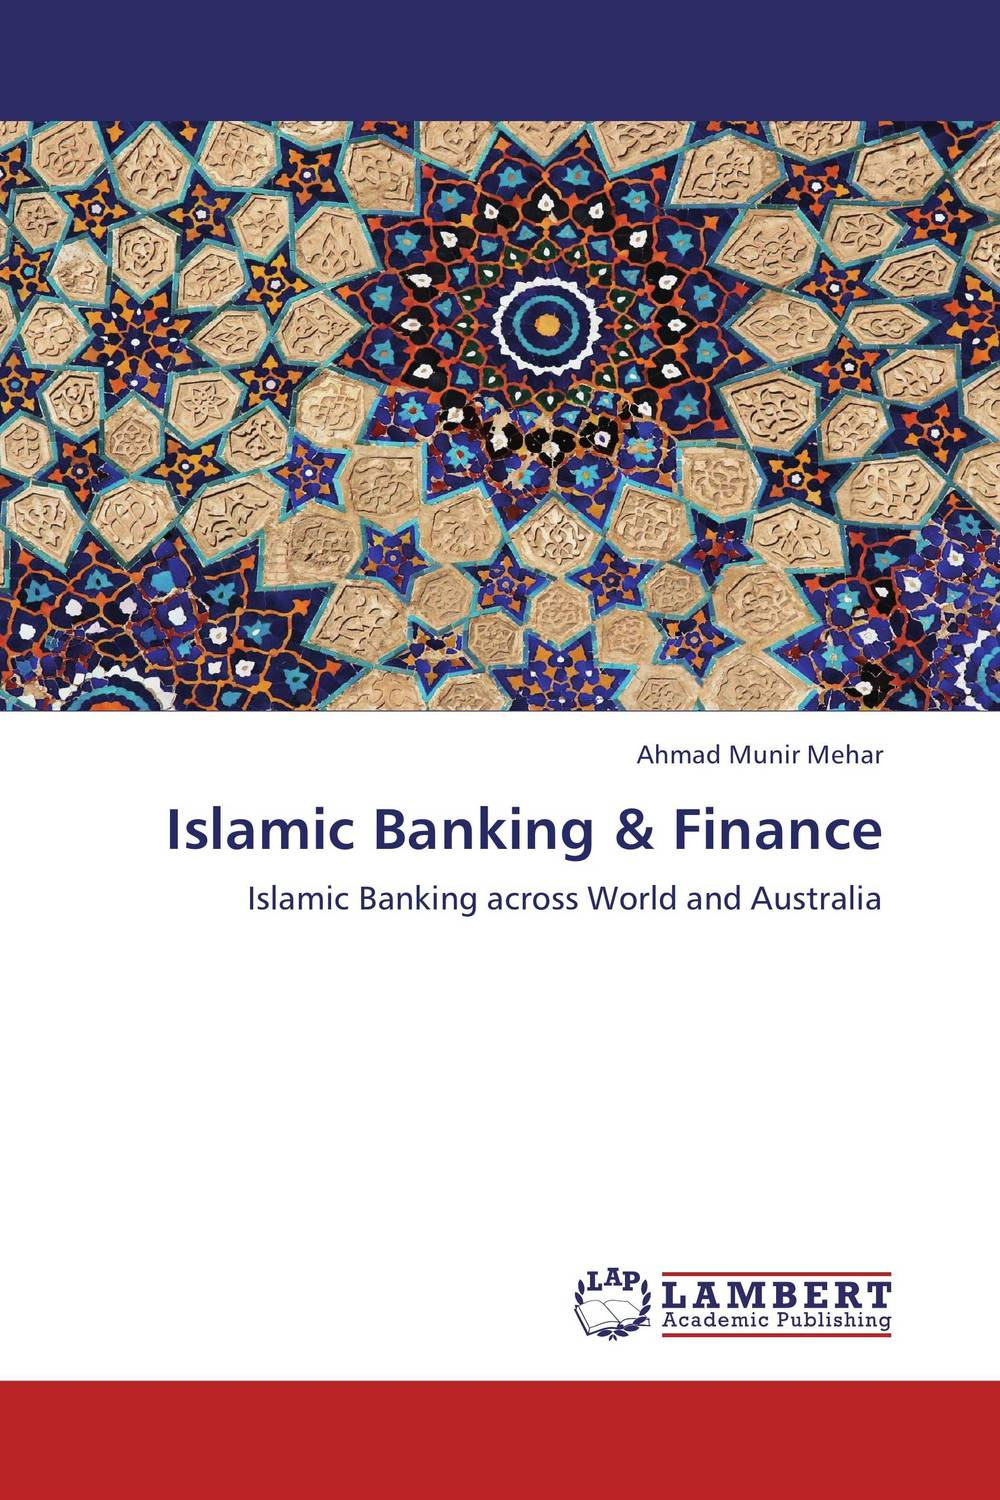 Фото Islamic Banking & Finance finance and investments